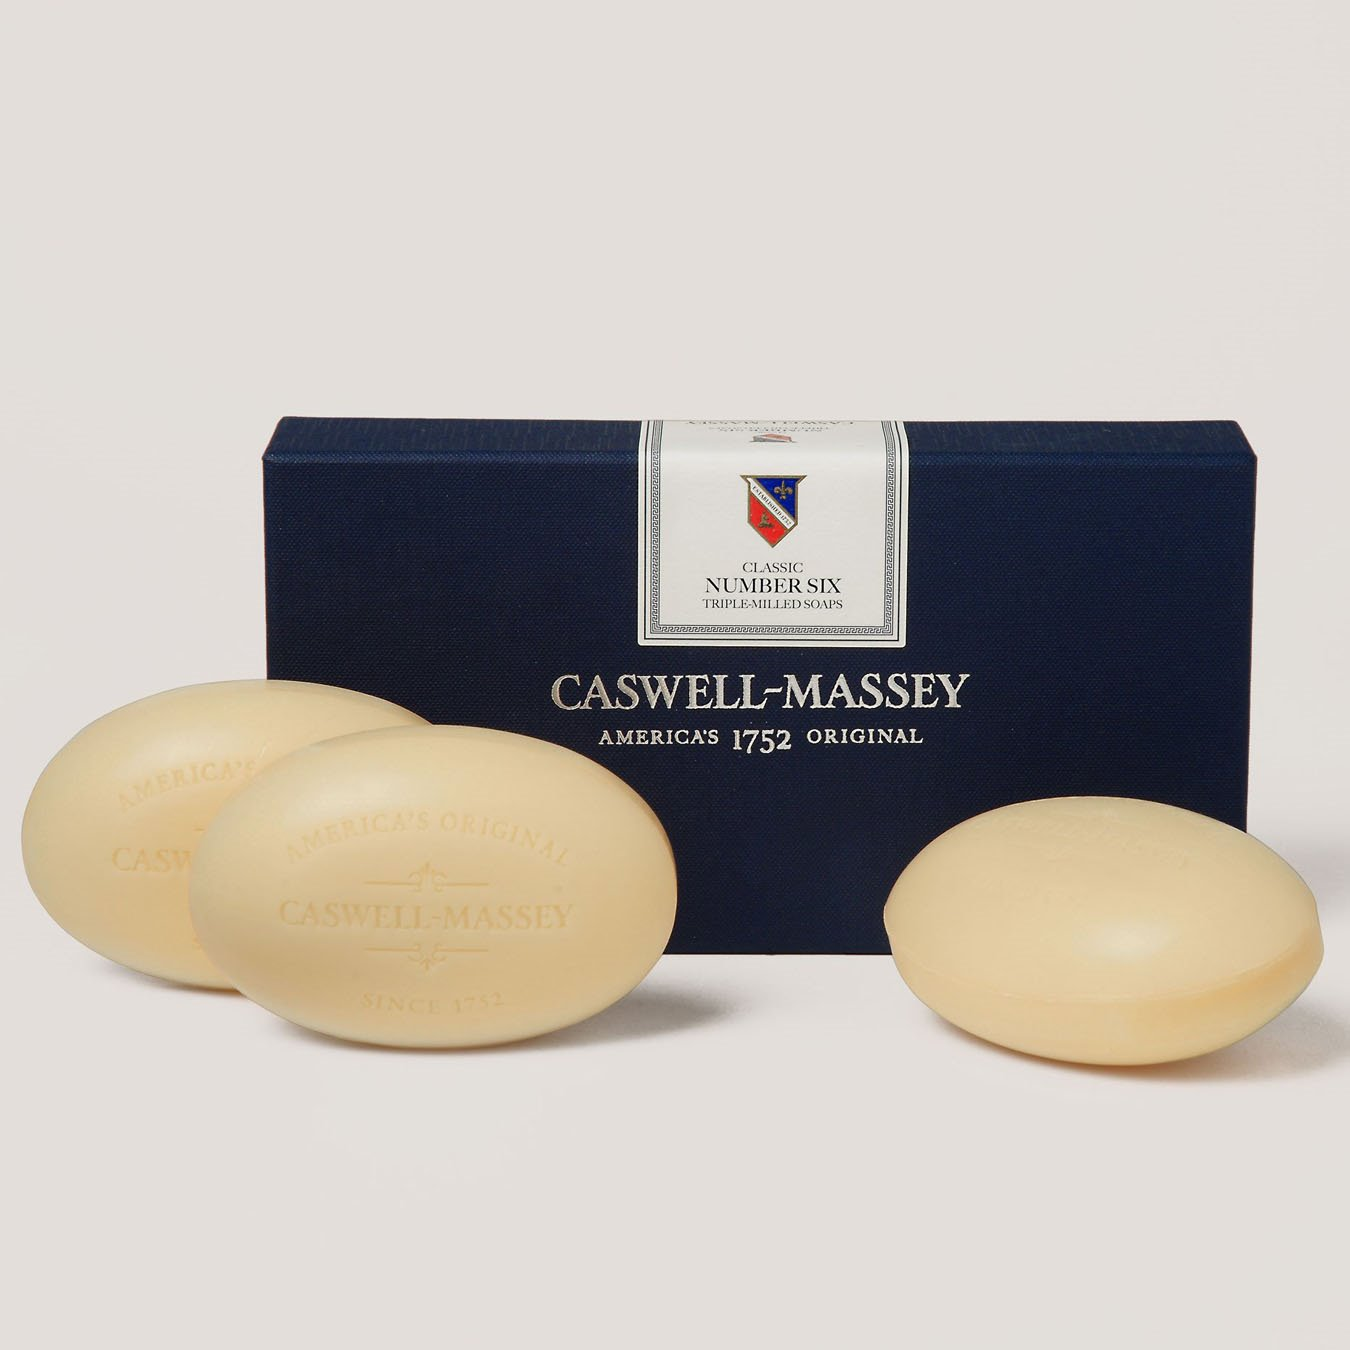 Caswell-Massey Number Six Bath Soap set